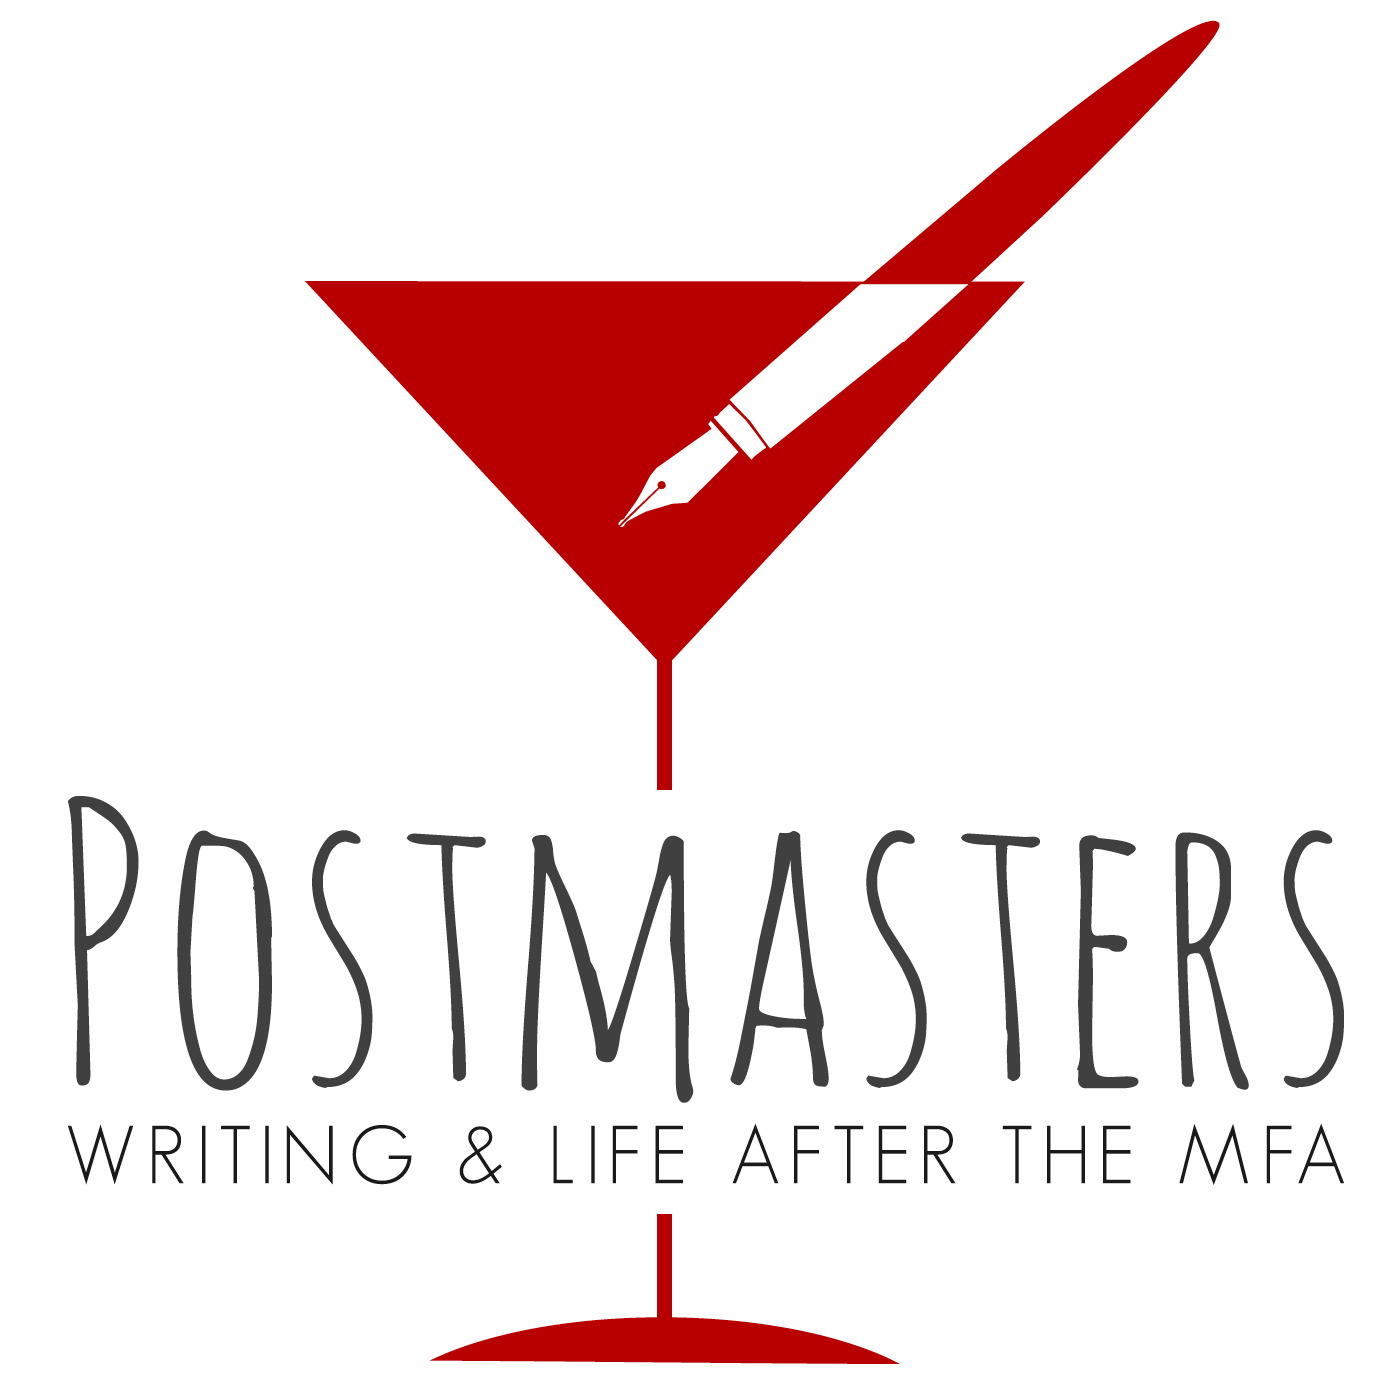 Episodes – The Postmasters Podcast